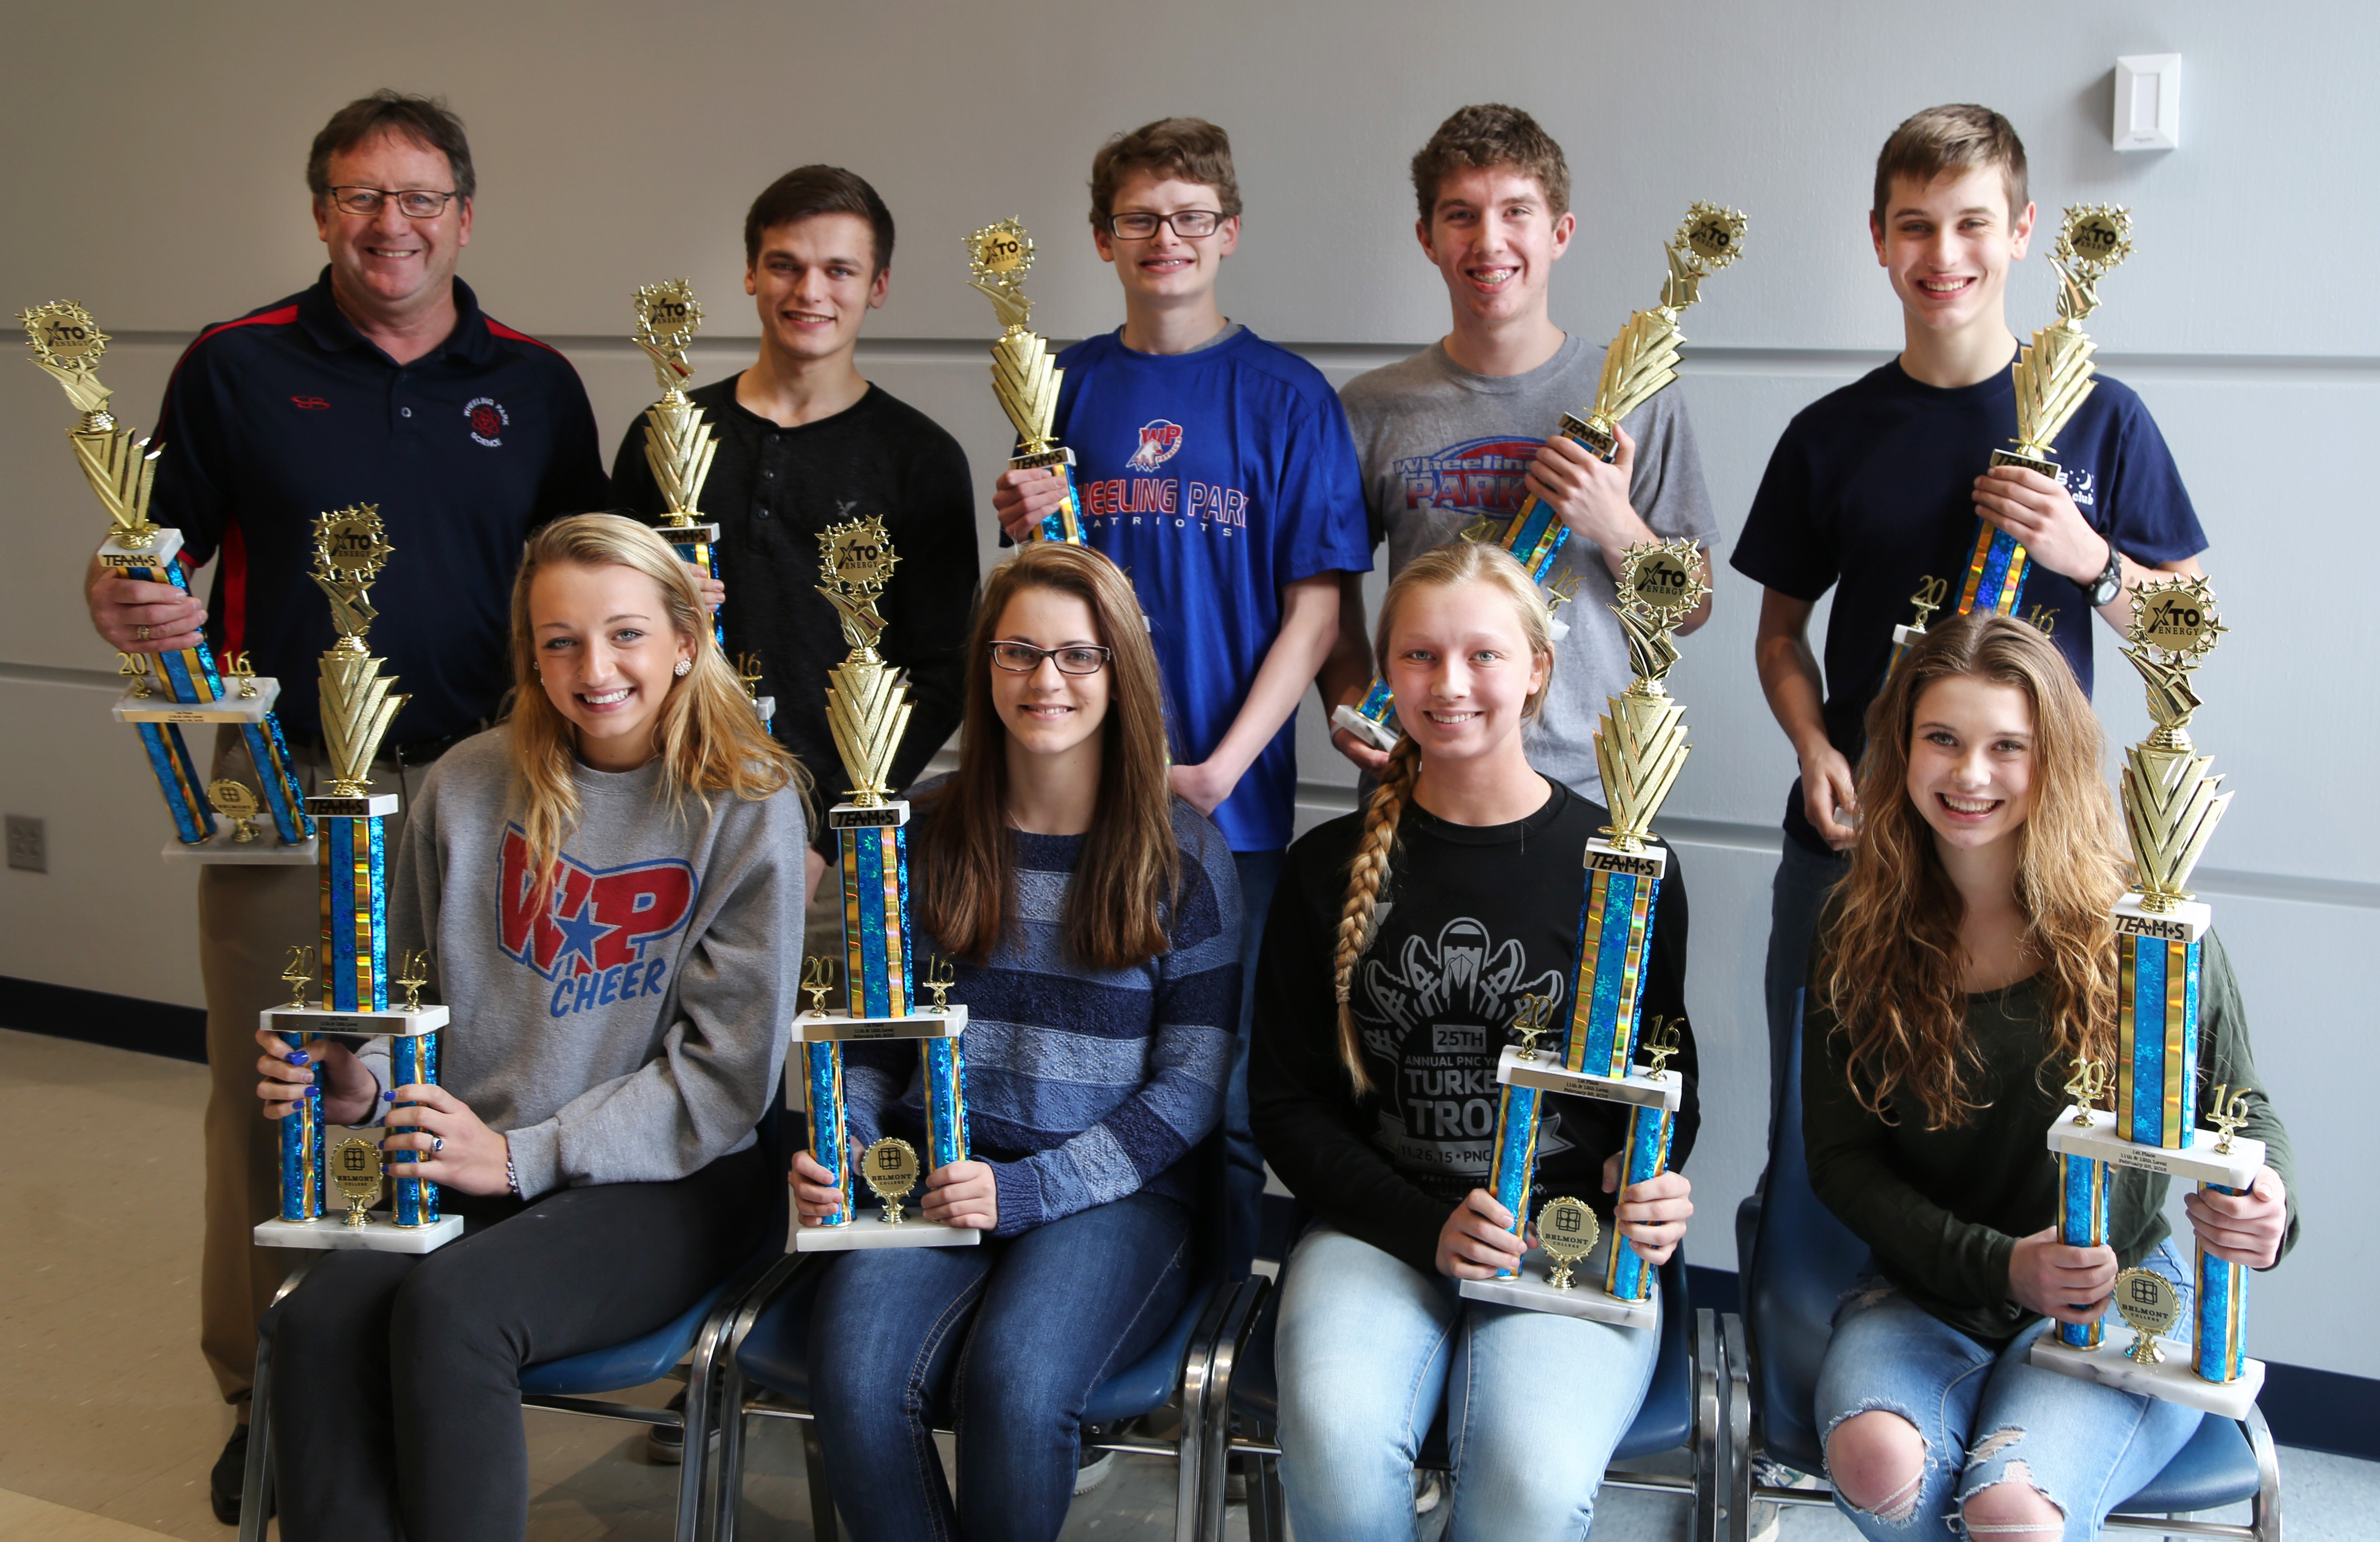 Photo Caption: 11th -12th Grade Varsity winners Wheeling Park High School Team A (seated left to right) Sydney Moffett; Kasey Freshwater; Lydia Russell; Miriam Demasi; (Standing left to right) Coach Pat Durkin; Nick Nestor; Zach Kovalski; Thomas Nagy; and William Sellers.